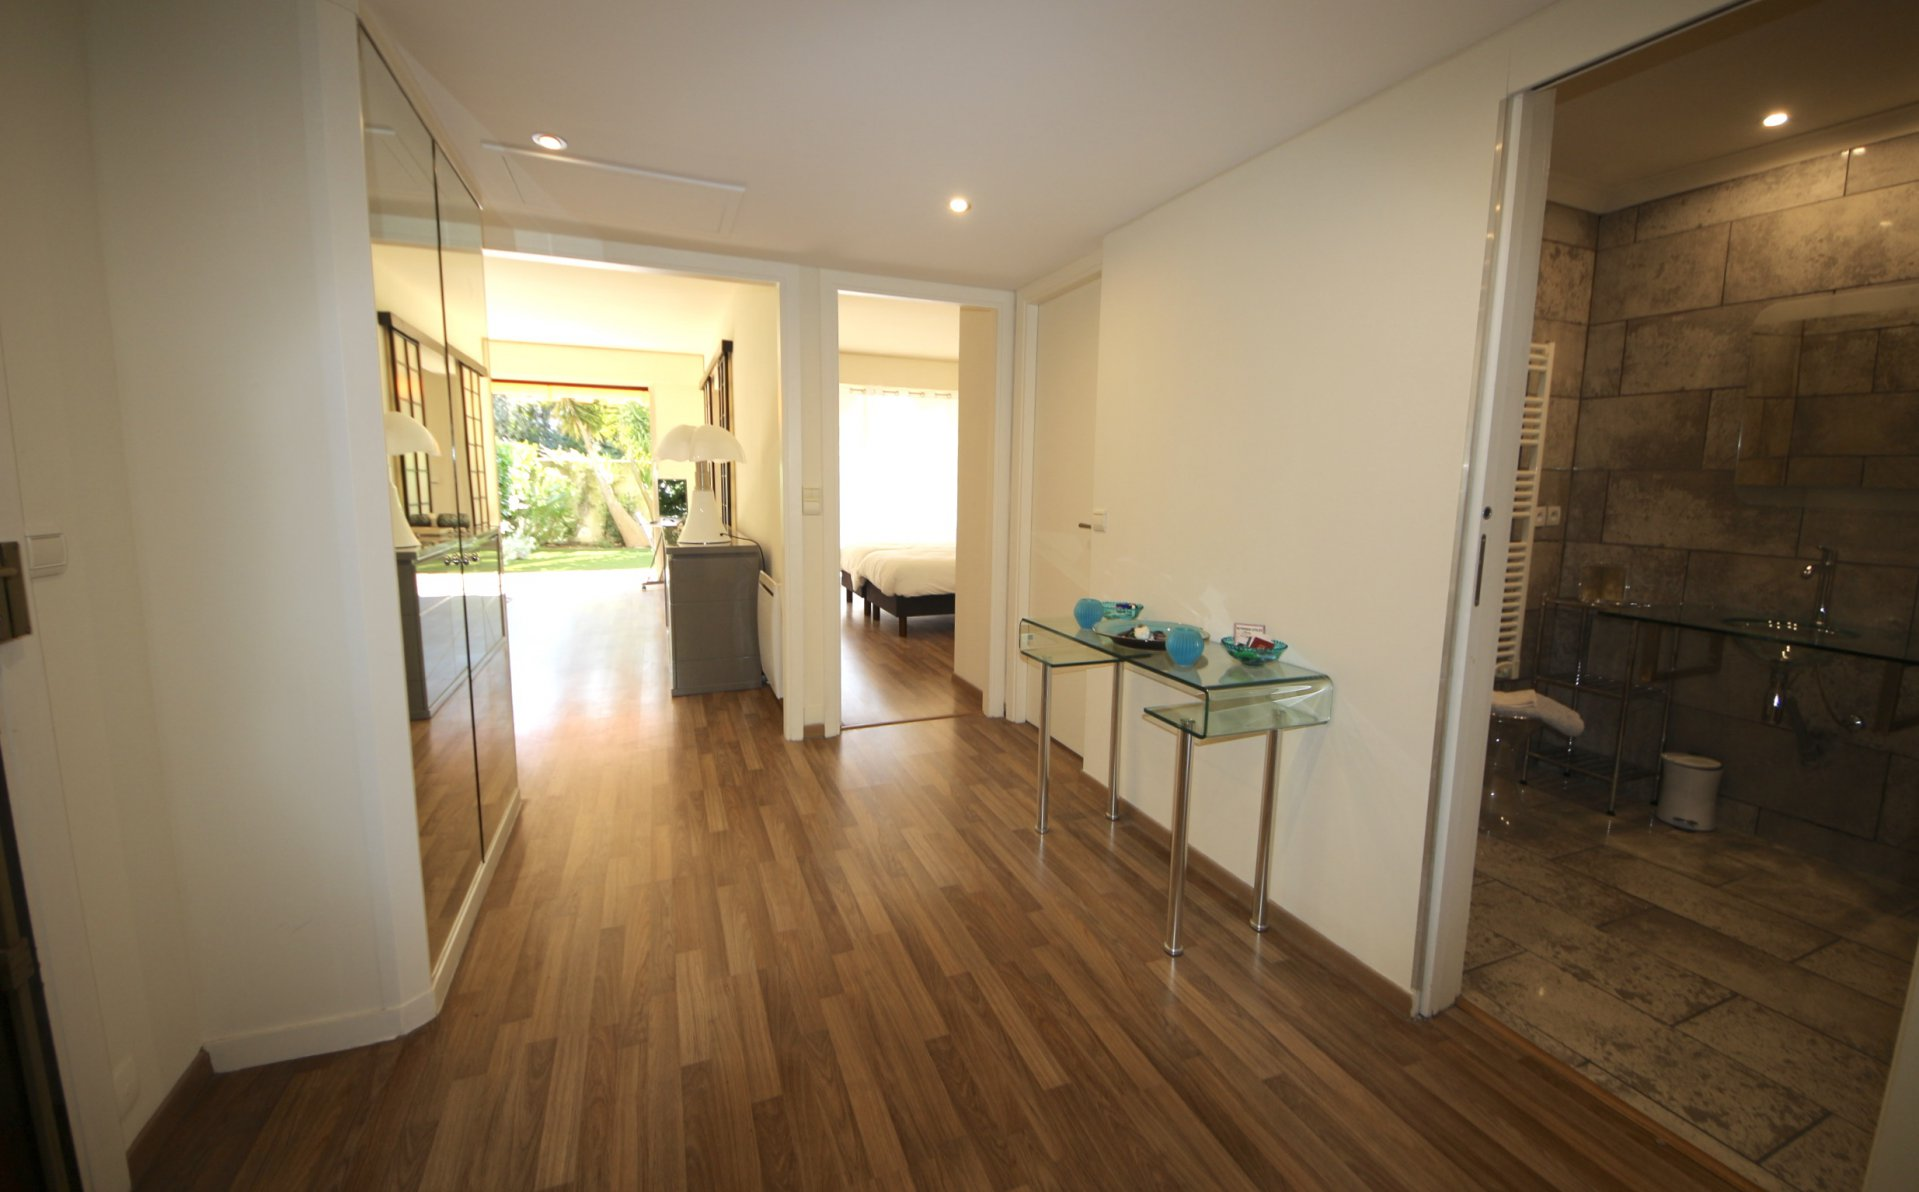 Cannes Montrose, Nice renovated 2 bedrooms apartment 81sqm with cellar and 2 parking places